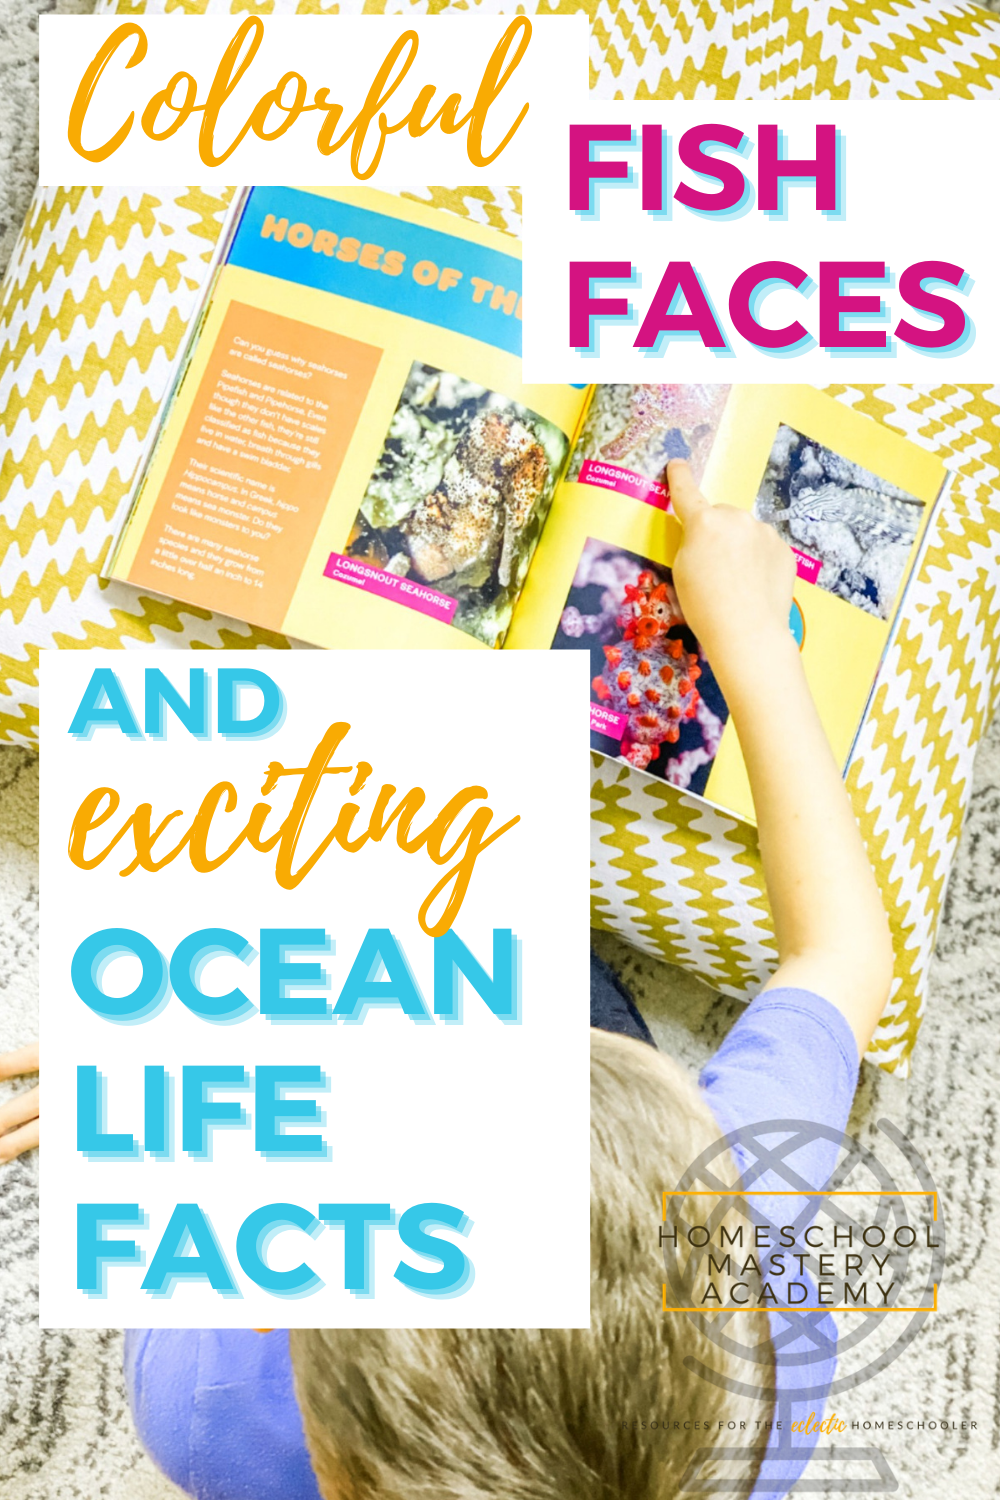 Fish Faces and Ocean Life Facts